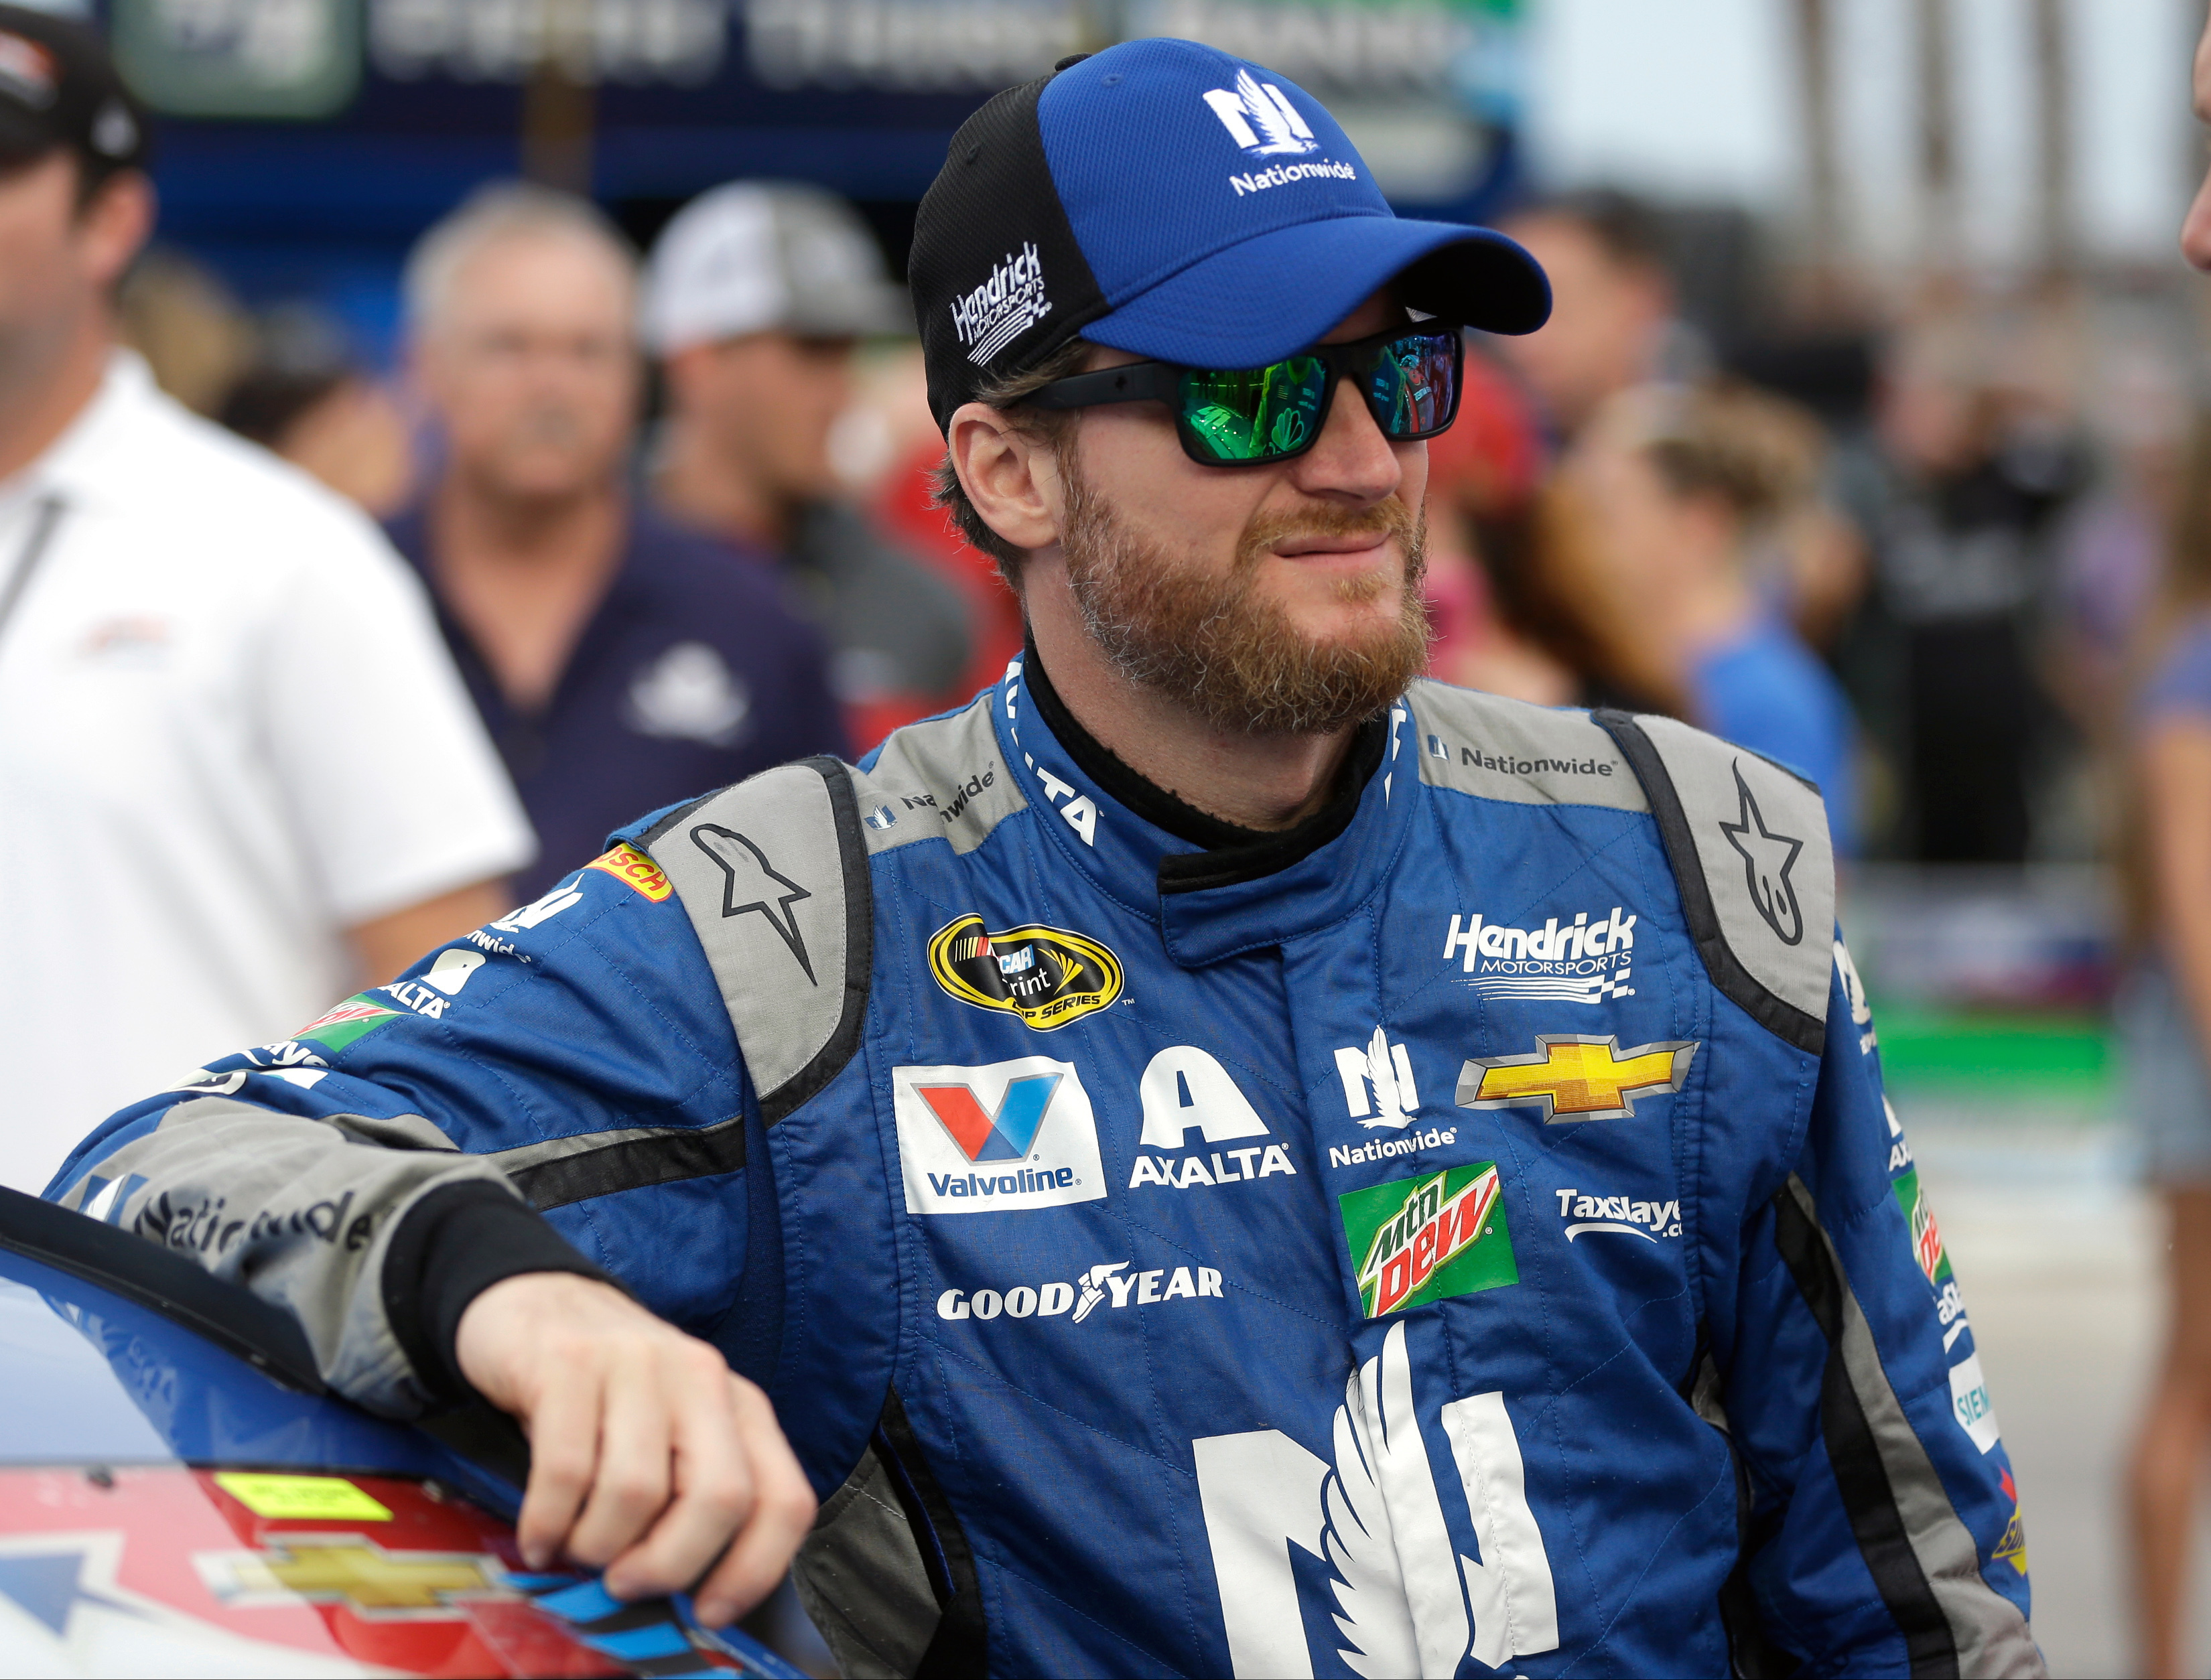 Dale Earnhardt Jr. and his first book, Racing to the Finish: My Story